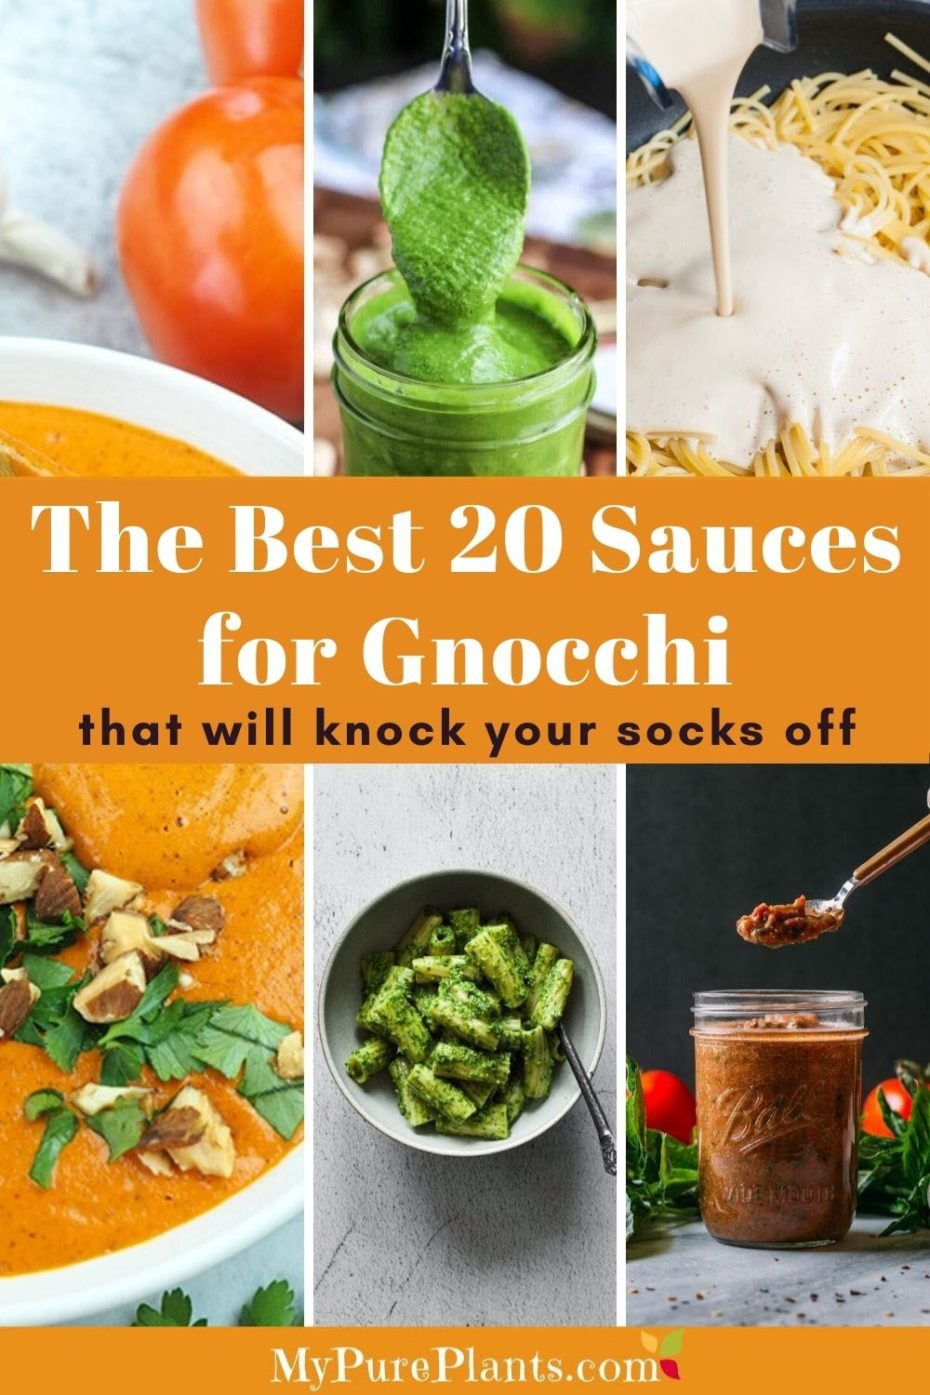 Photo collage of different colored sauces with a text in the middle saying The Best 20 Sauces for Gnocchi that will knock your socks off